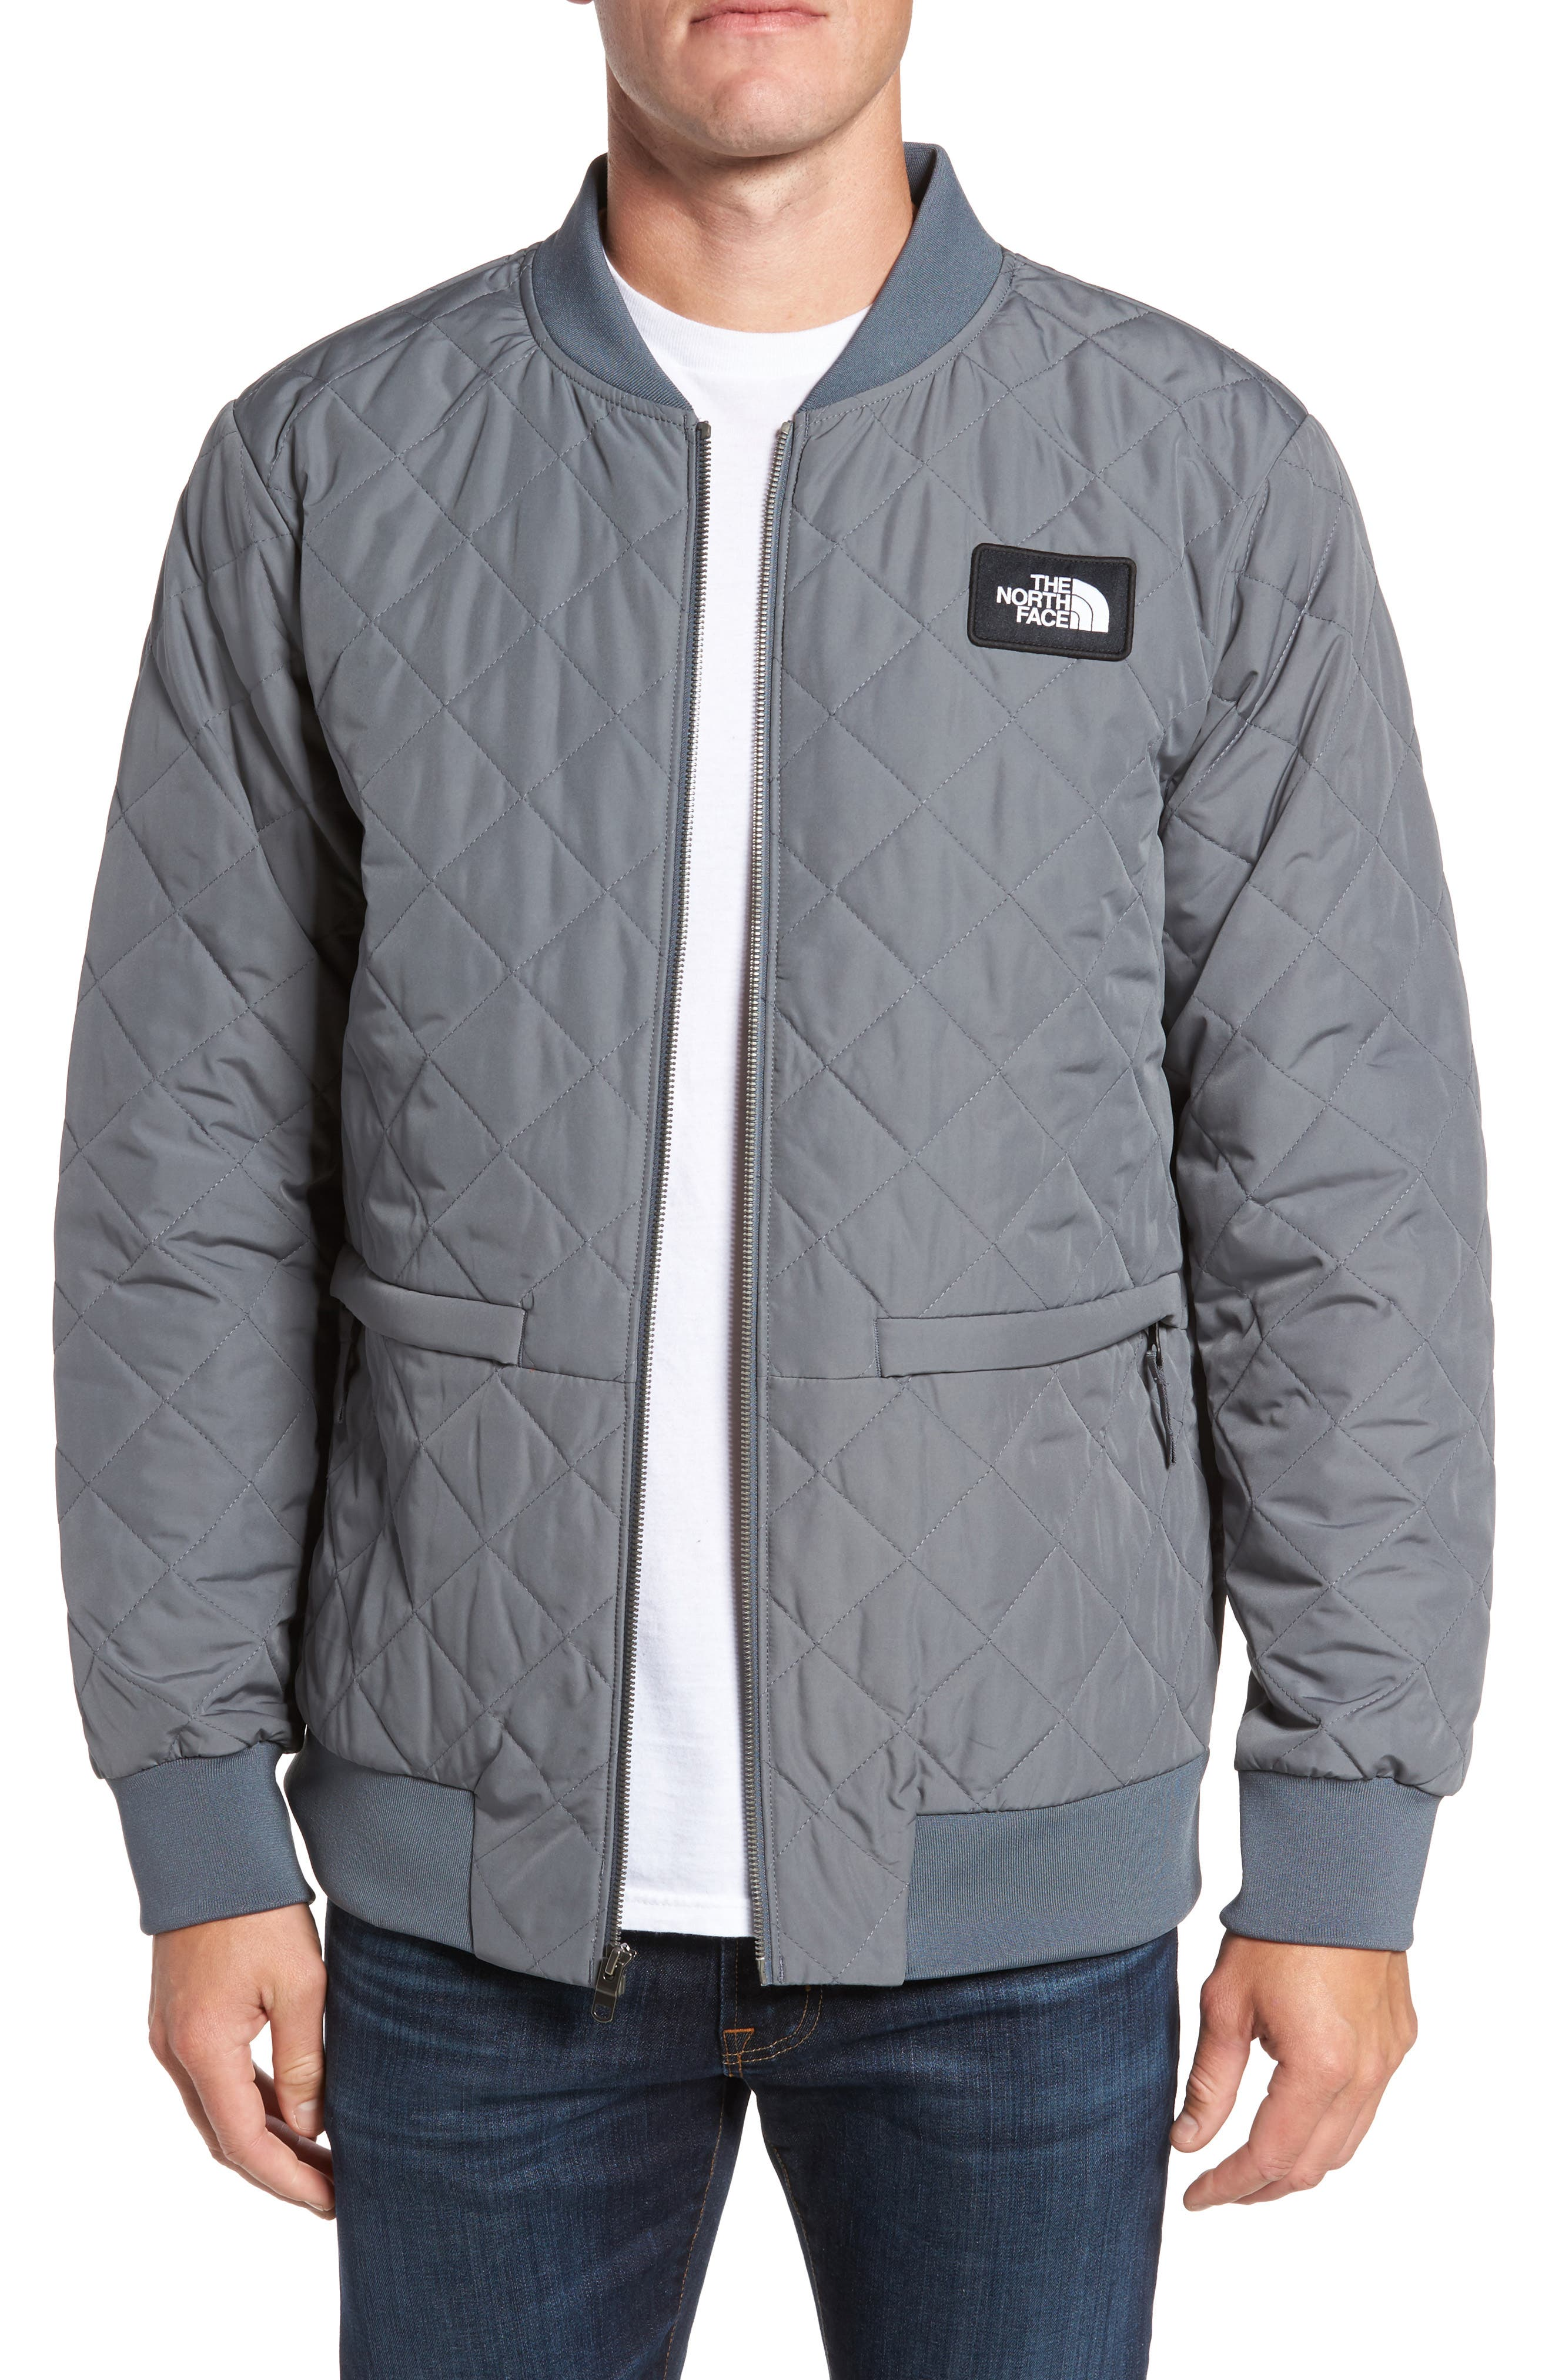 Distributor Quilted Bomber Jacket,                         Main,                         color, Grey